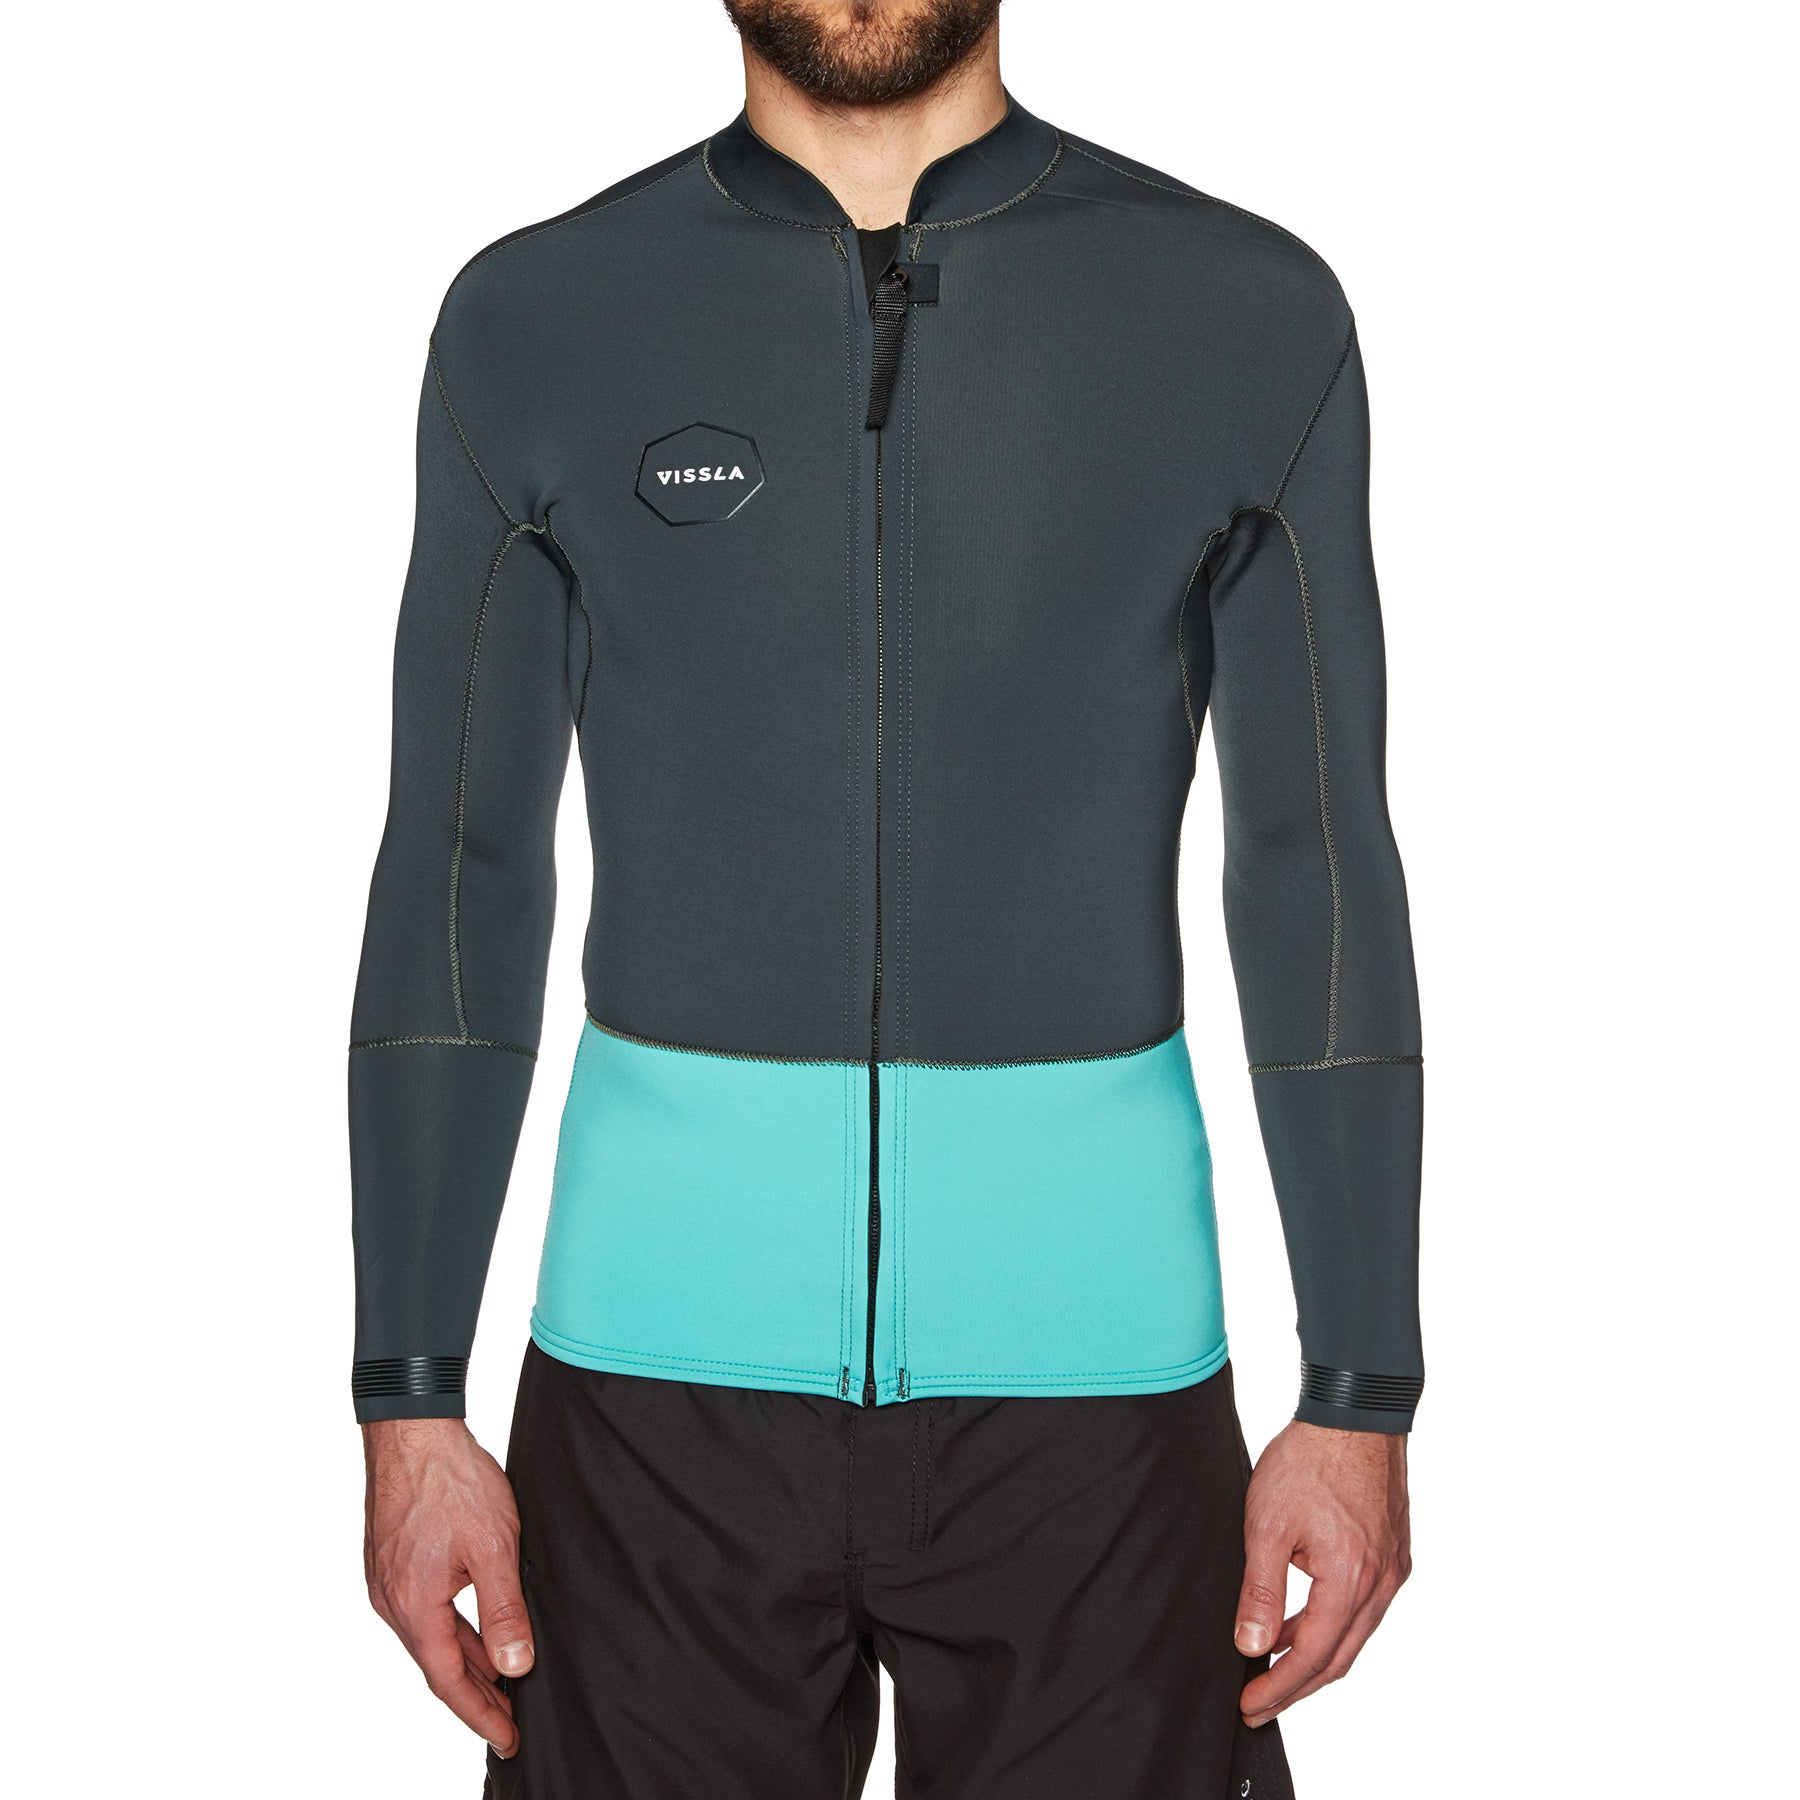 Vissla 2mm Front Zip Long Sleeve Wetsuit - Phantom